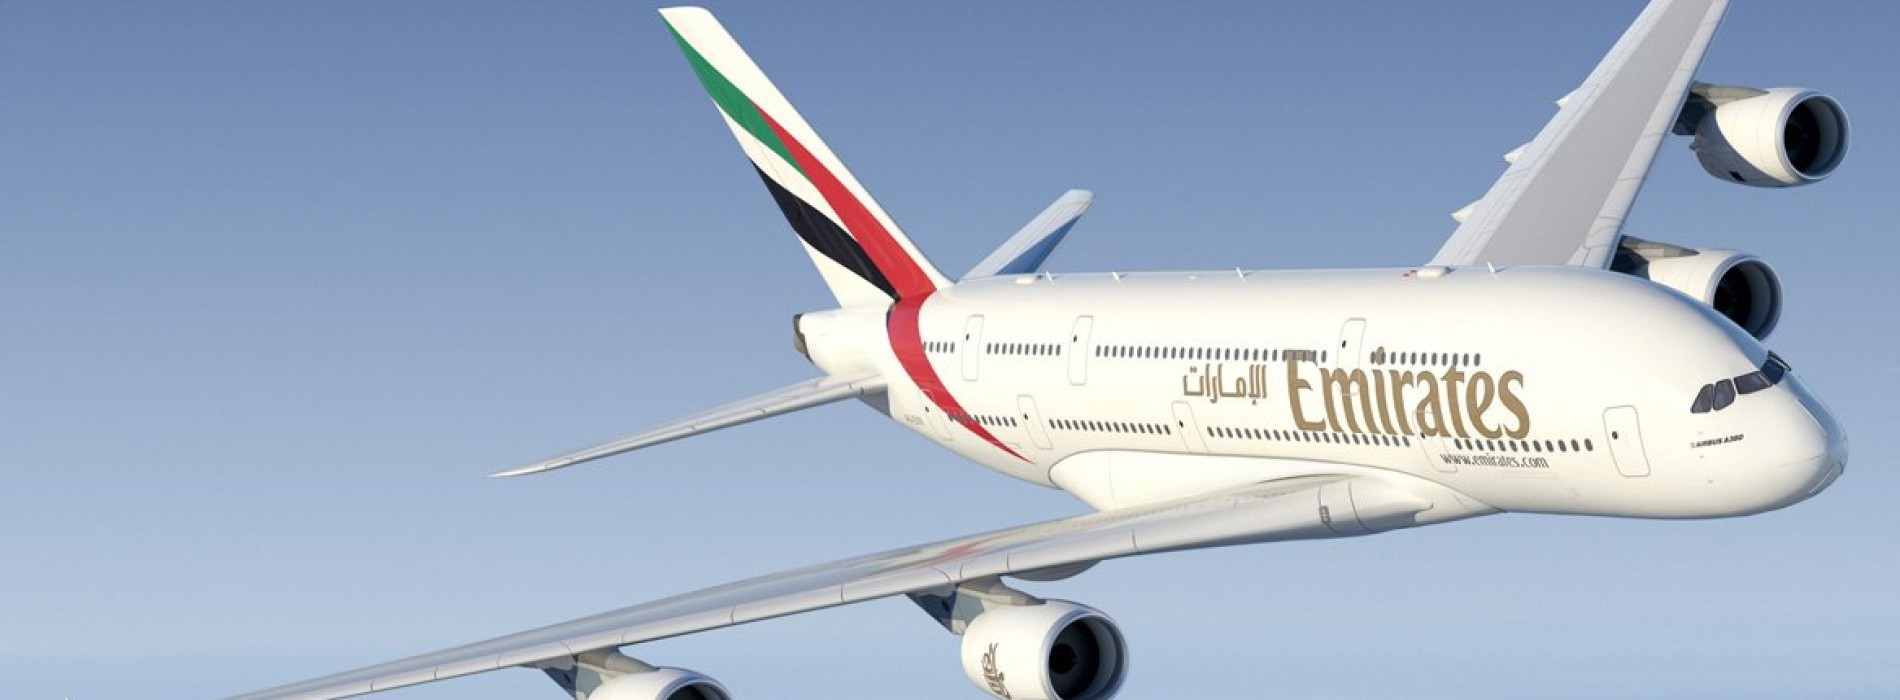 Emirates sets new record with over 1 million Wi-Fi connections on board